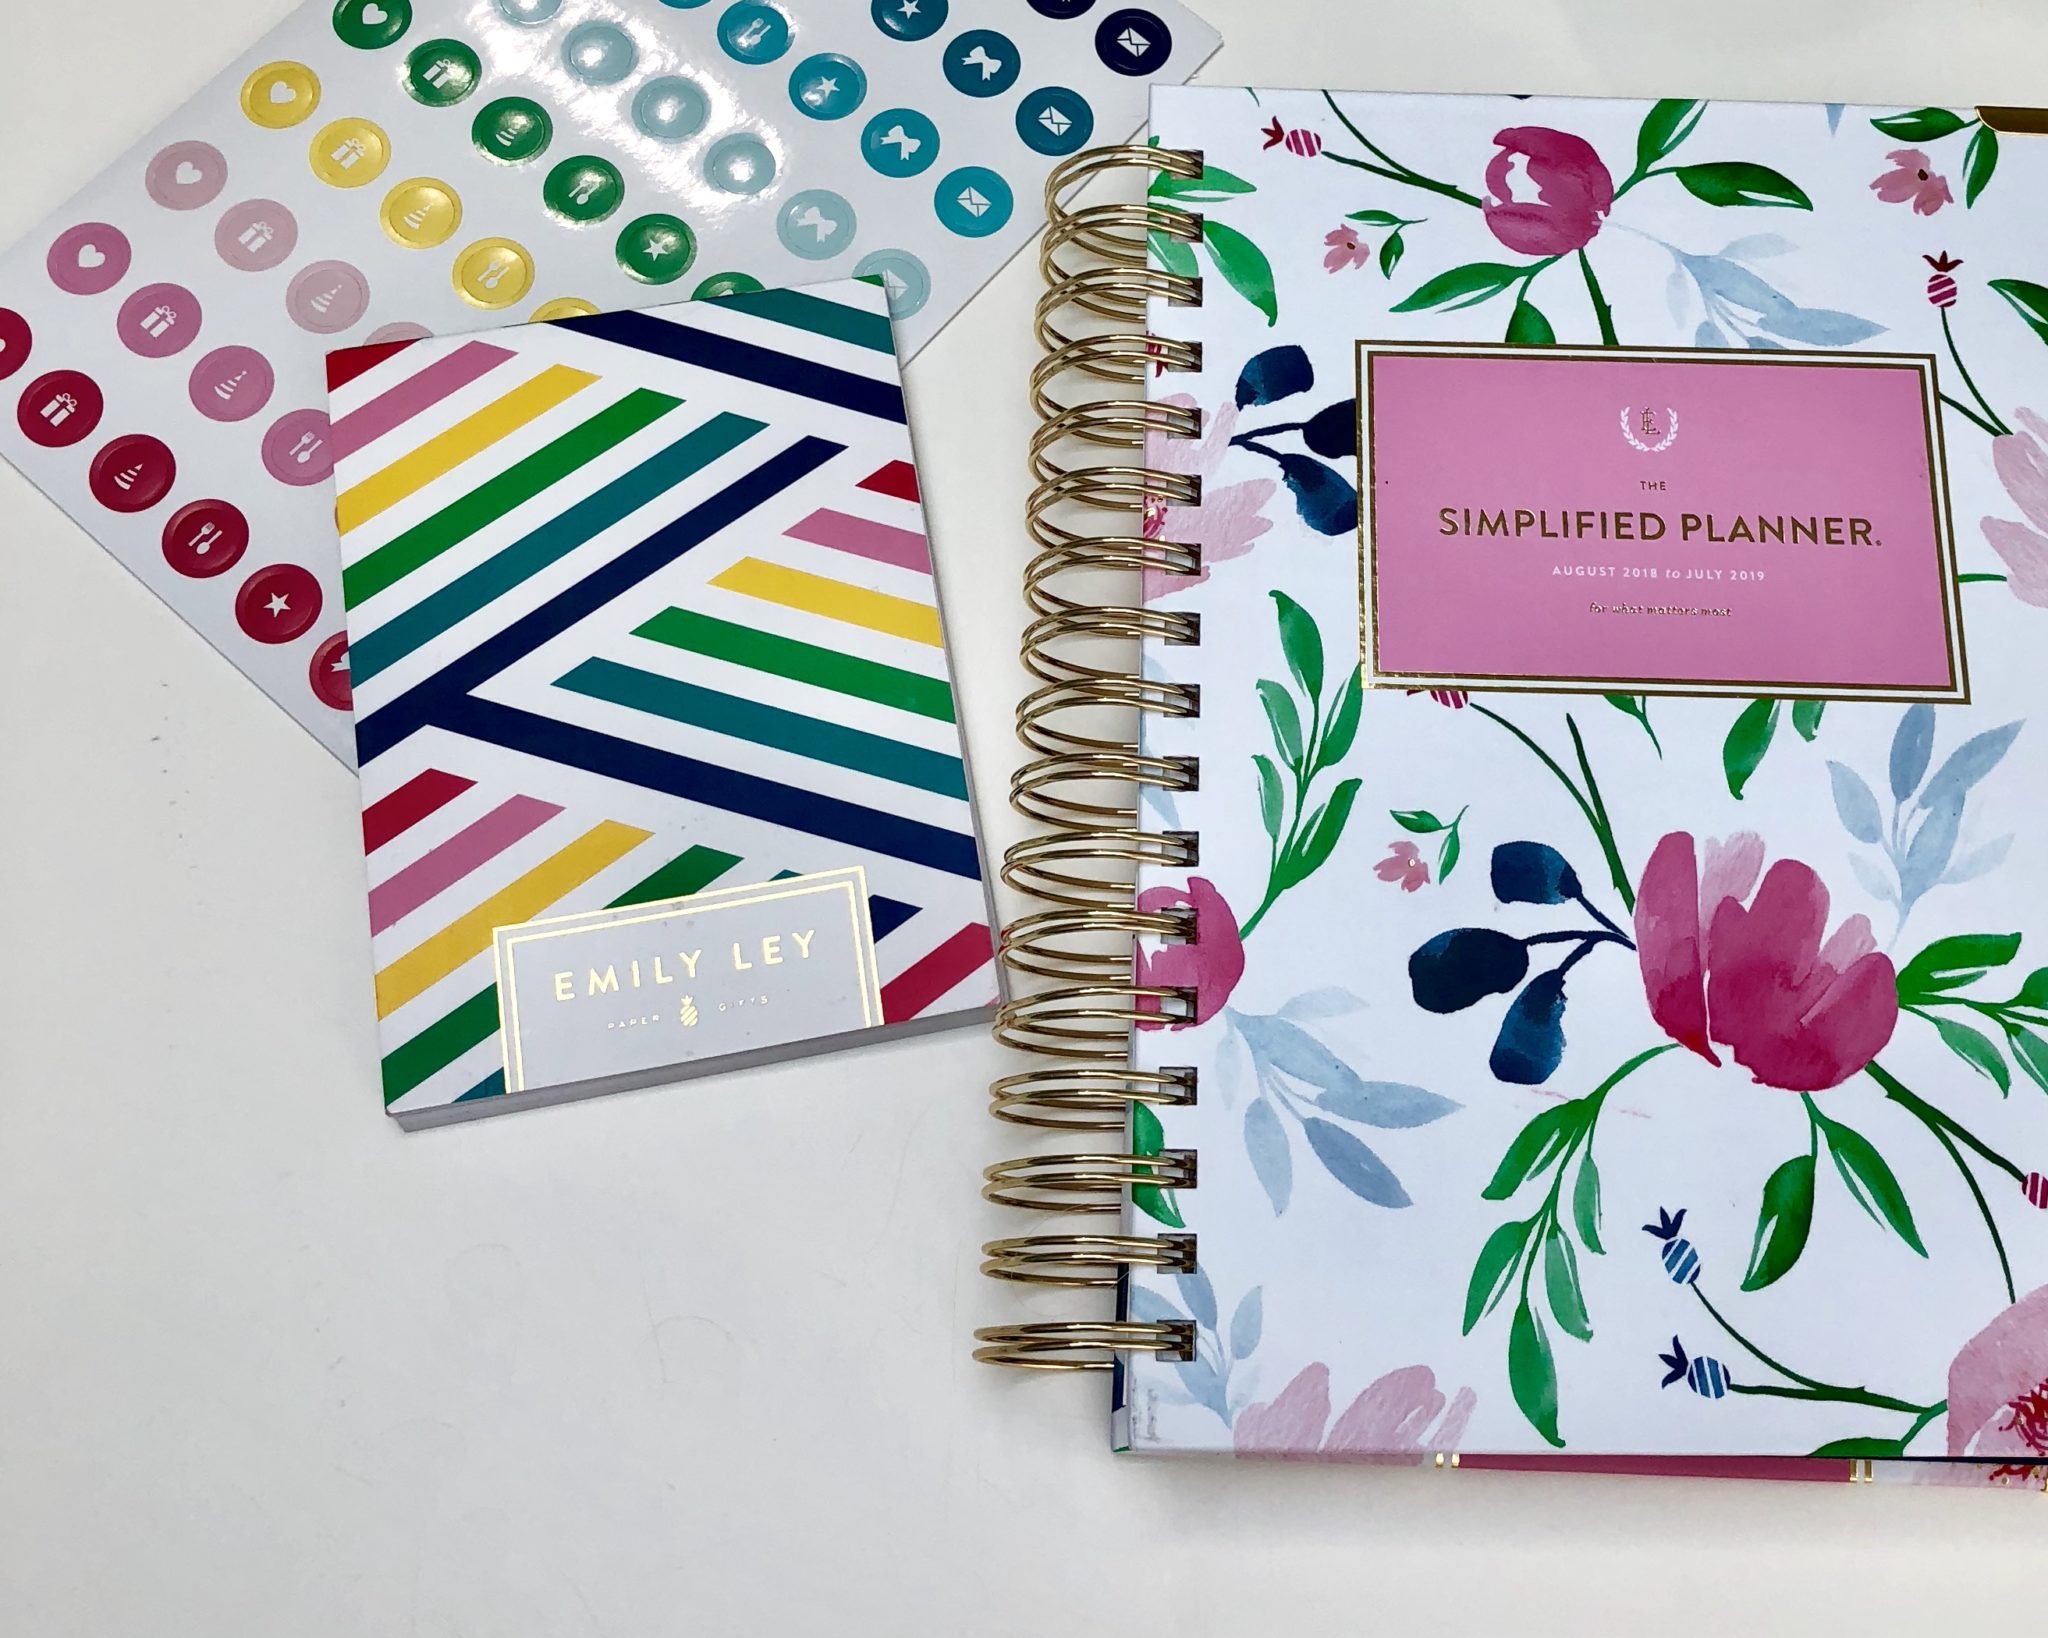 photo relating to Simplified Planner called System with Me: Simplified Planner - Over and above the Bookends